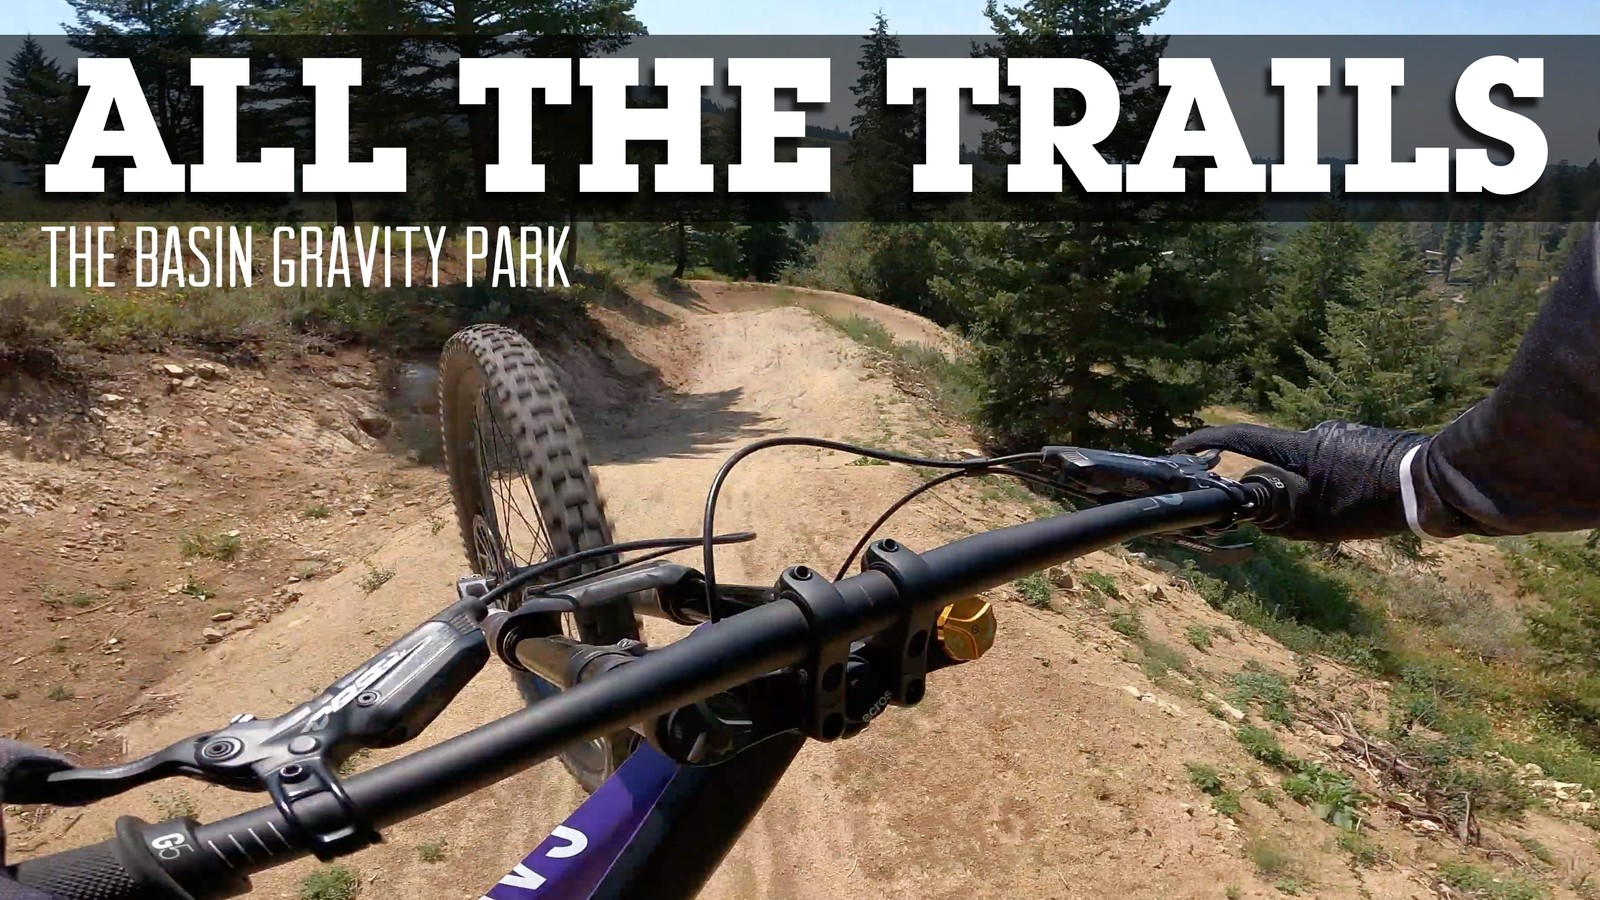 ALL THE TRAILS - The Basin Gravity Park